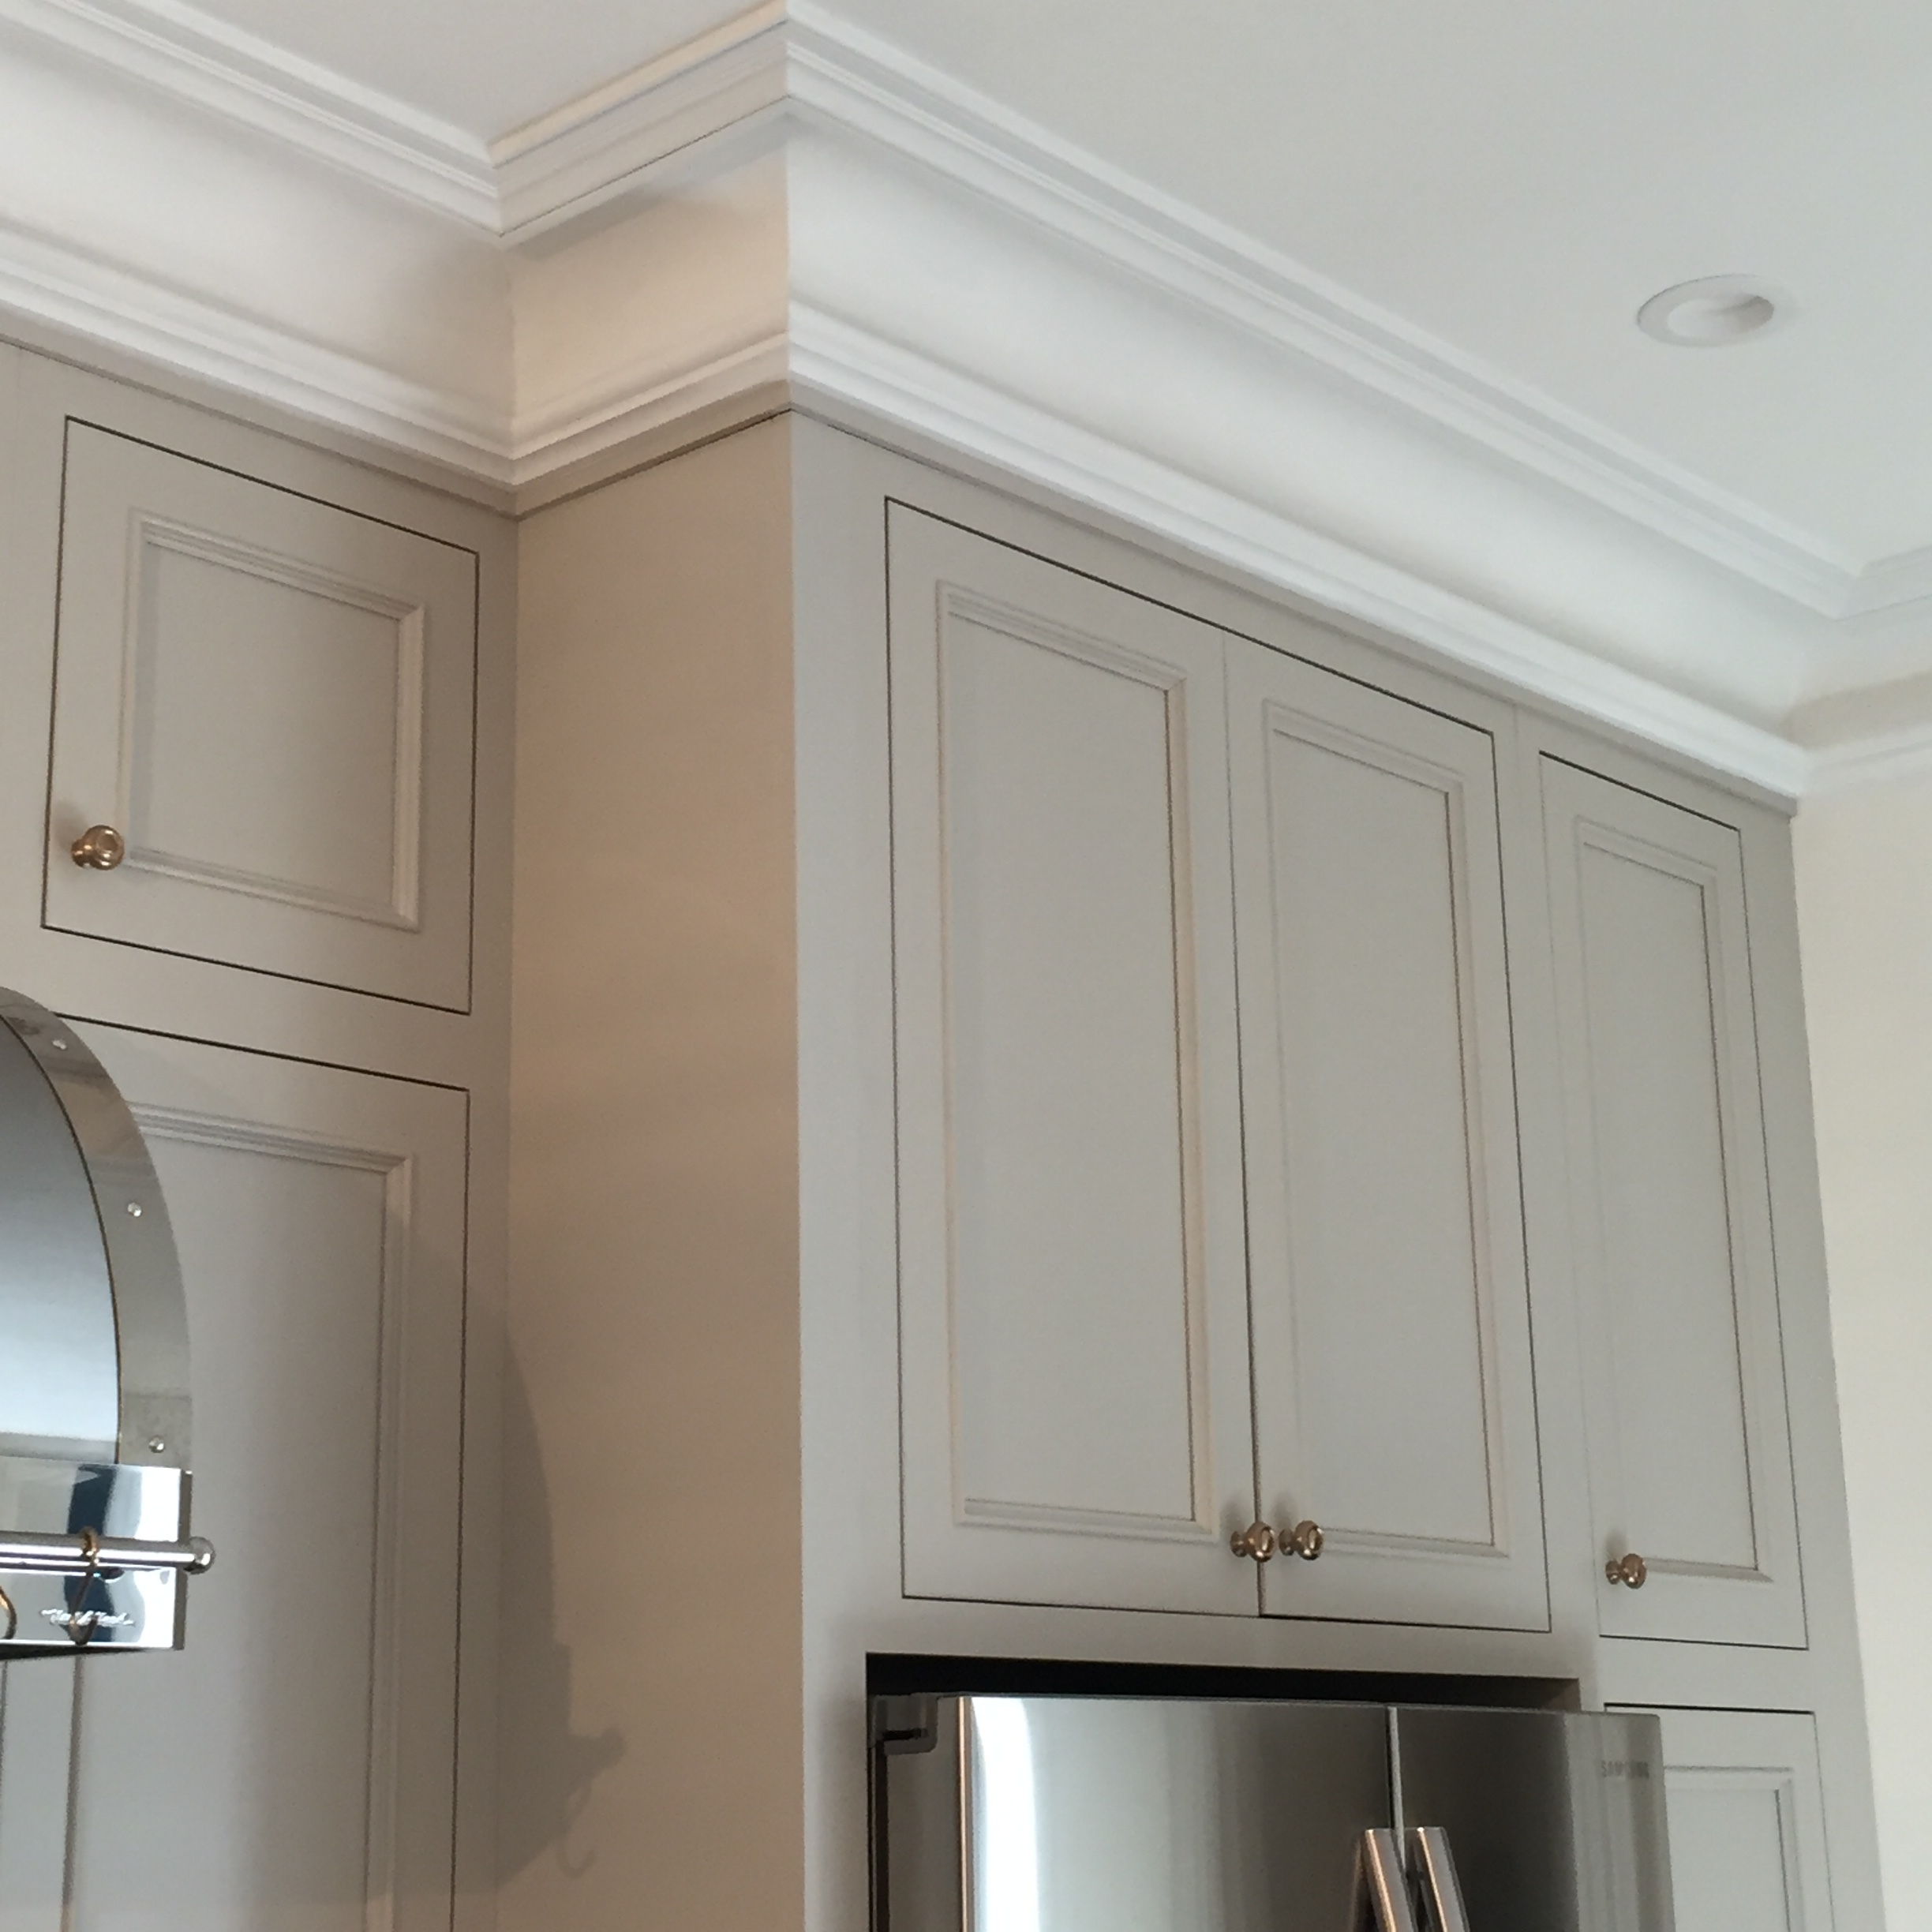 Moldings for days. (And for Dave.)